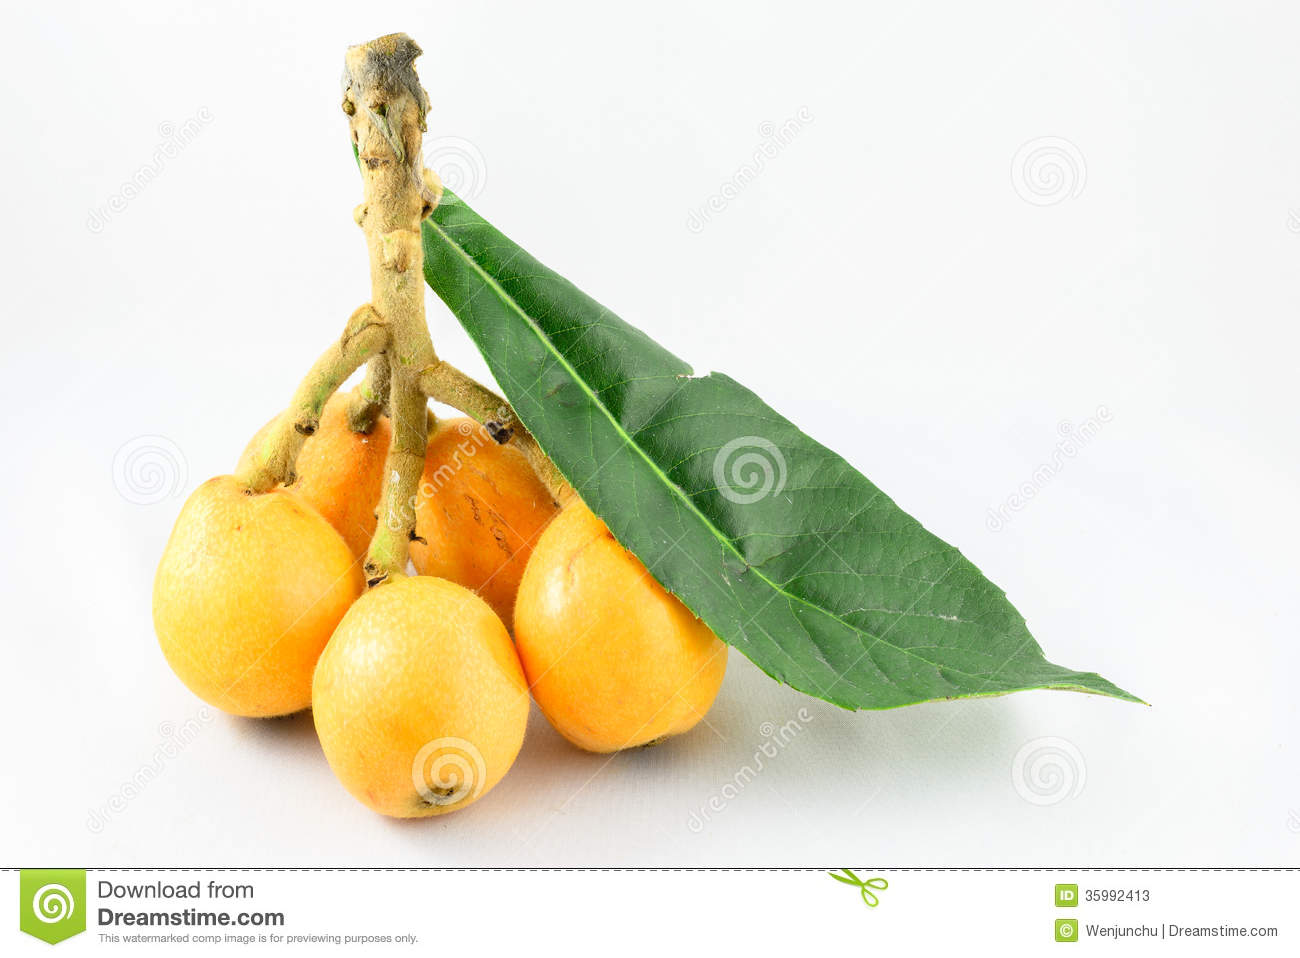 Loquat Berries clipart #20, Download drawings